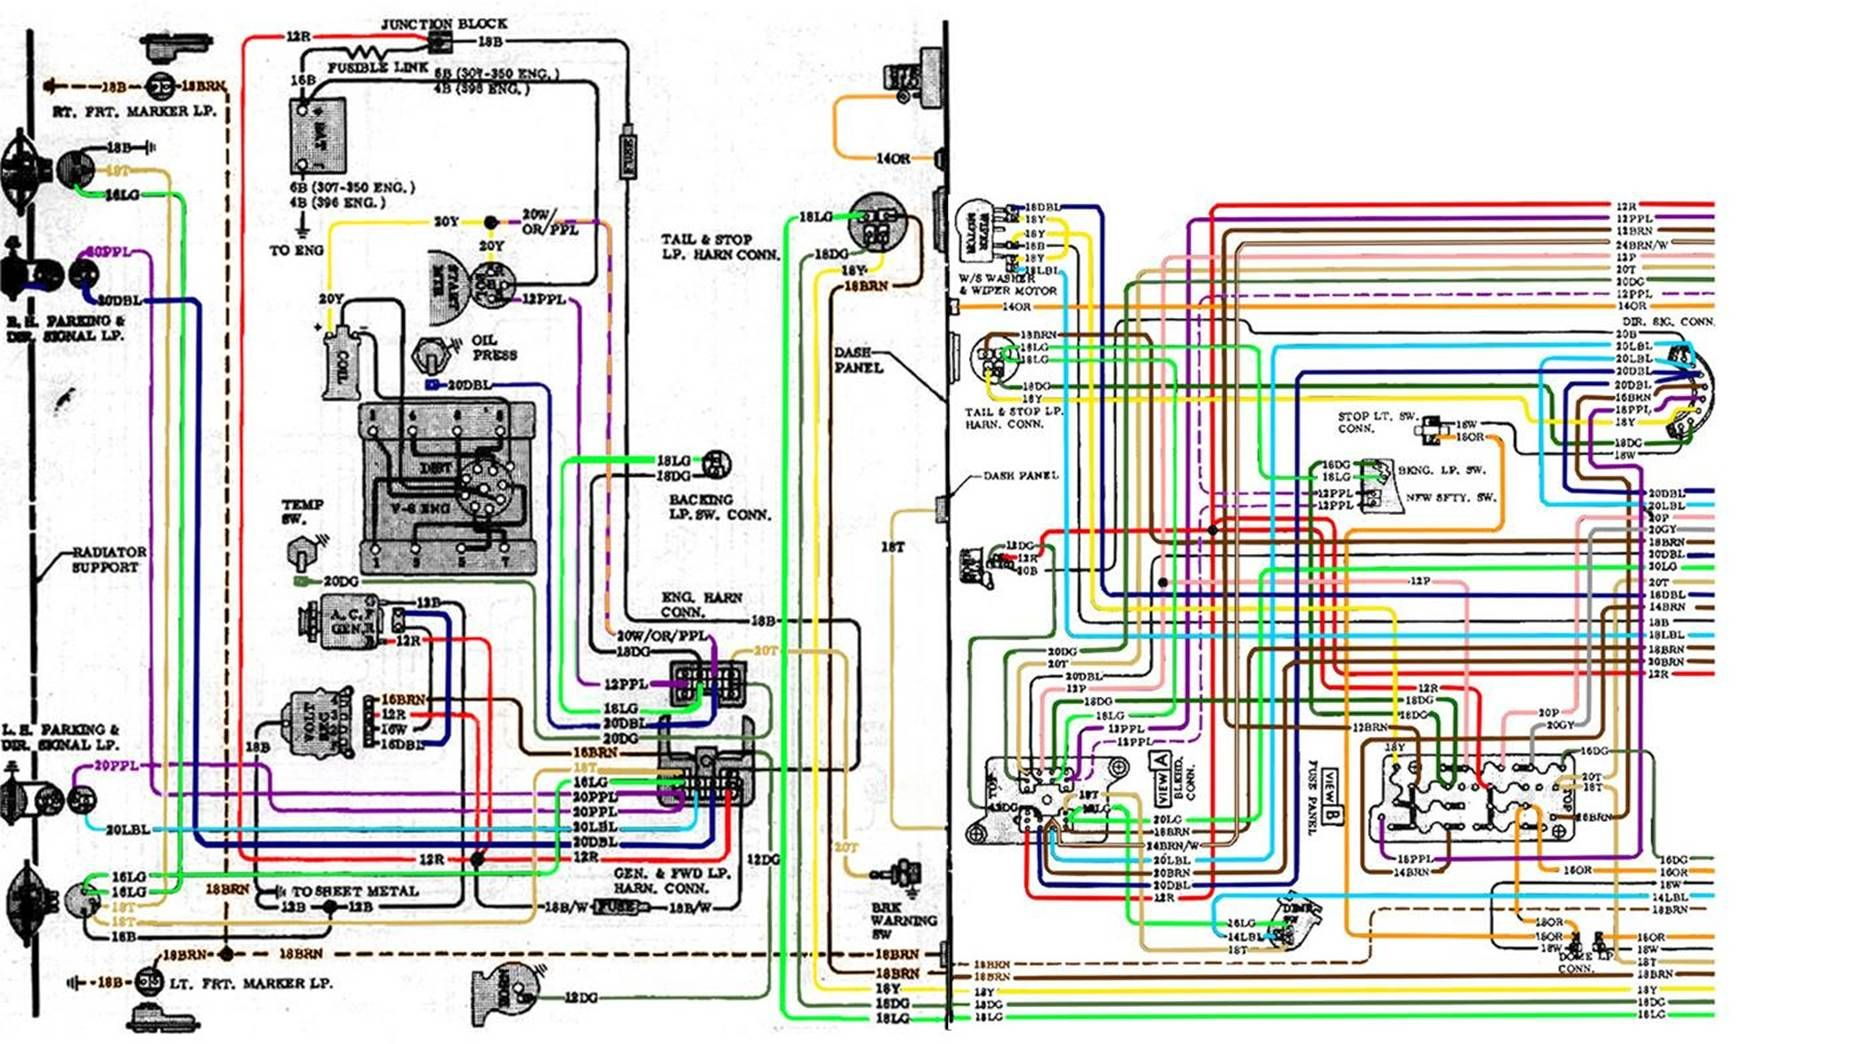 1967 Ford Mustang Stereo Wiring Diagram 67 72 Chevy Wiring Diagram Crafts And Art Chevy S10